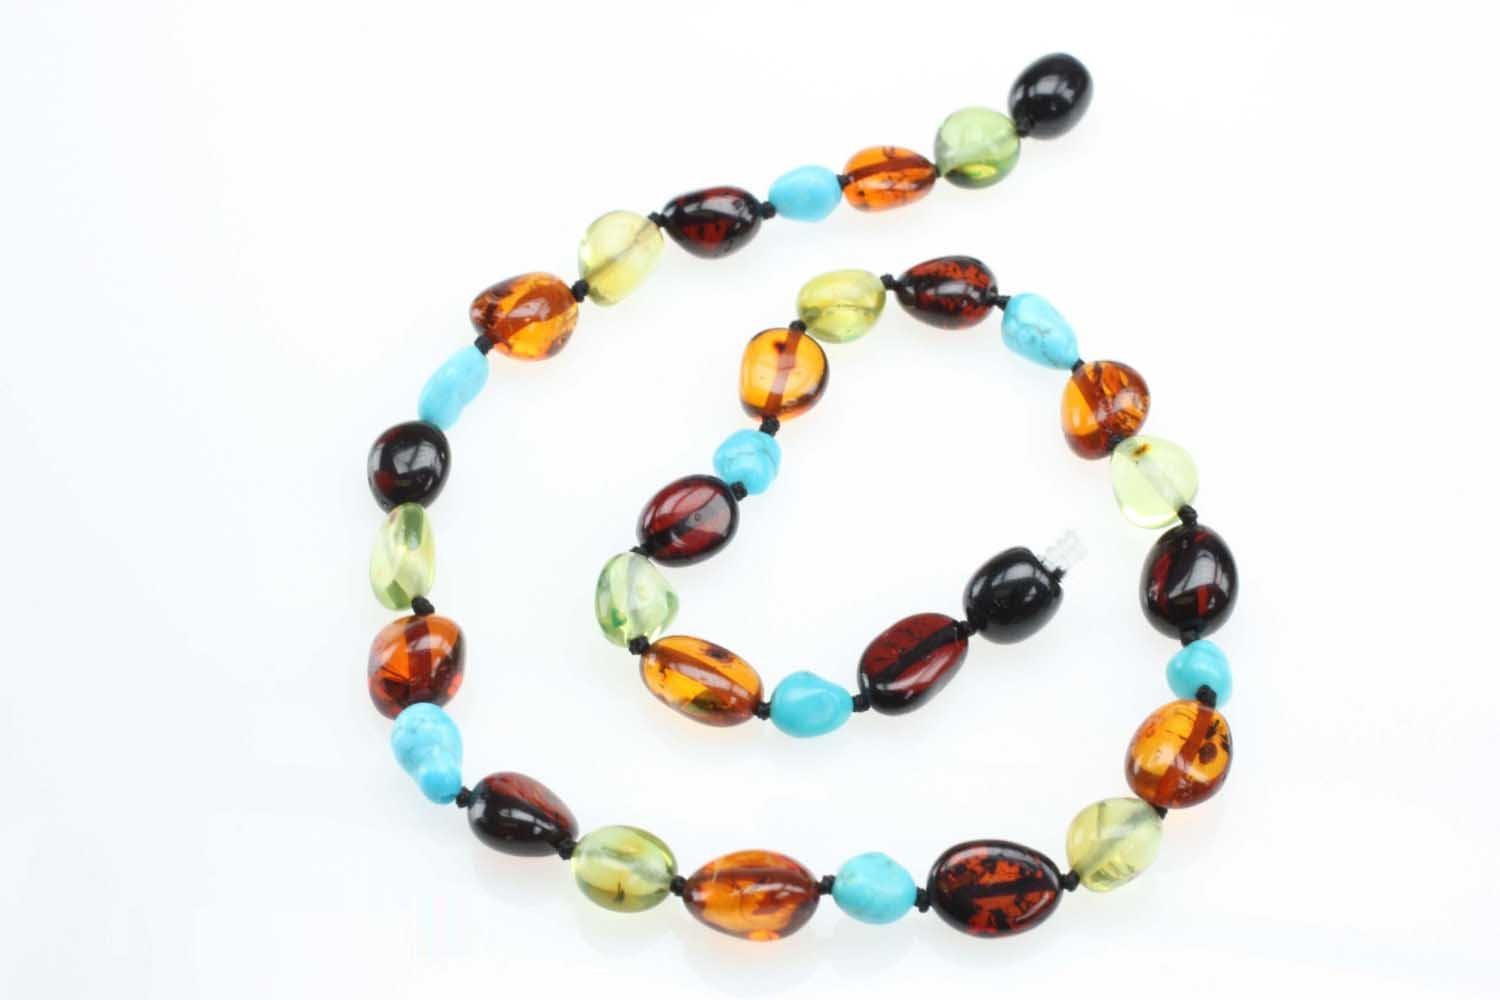 Baby Gifts Amberbeata Multi-color Raw Beauty Certified *100/% Genuine* Raw Baltic Amber Teething Necklace for Baby